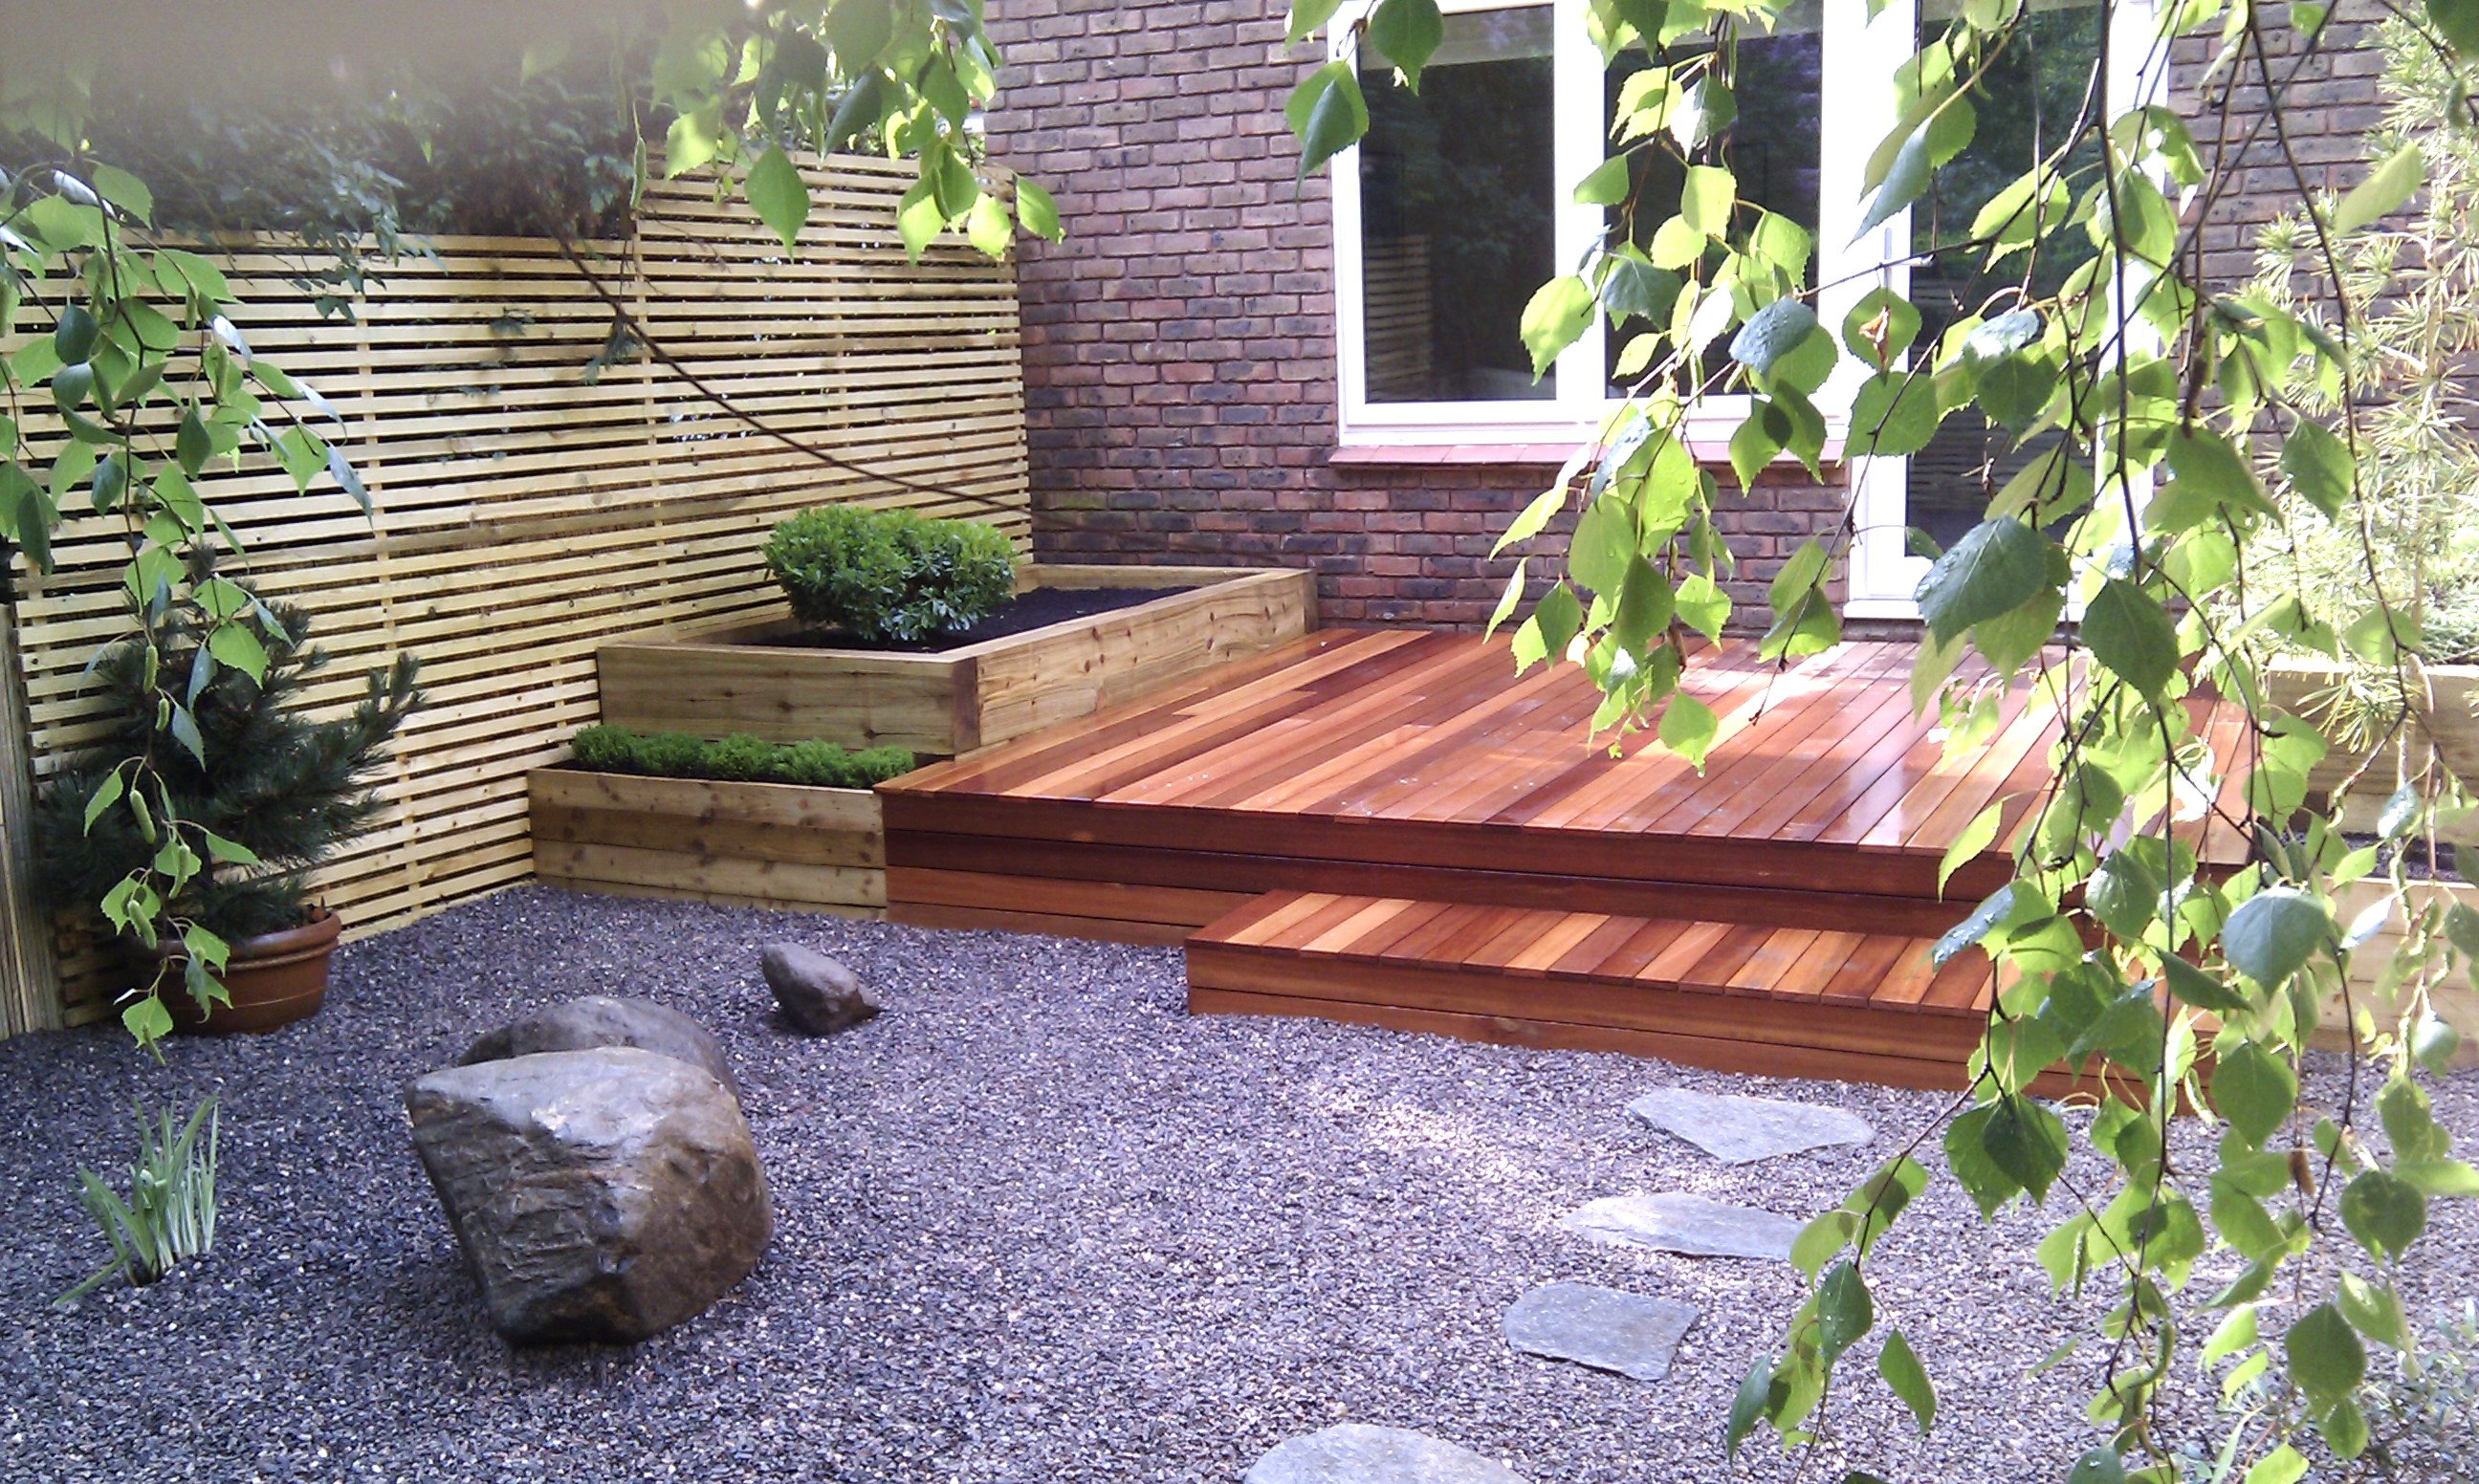 hardwood decking minimalist limestone chippings privacy screen south east london (36)